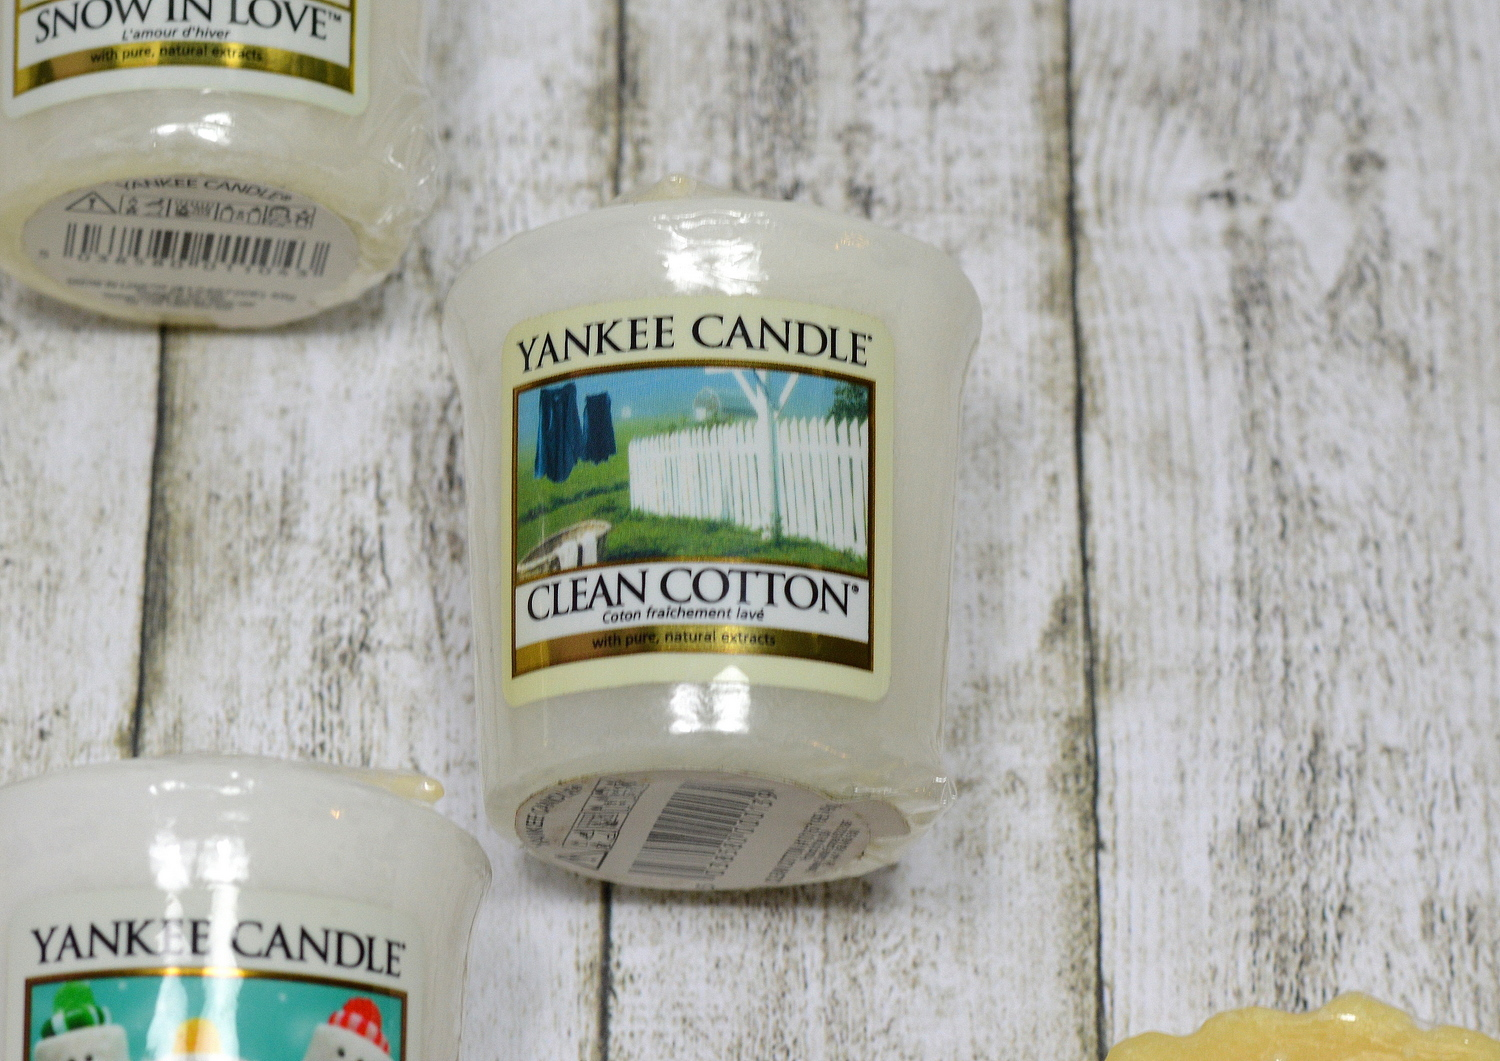 Yankee Candle Clean Cotton